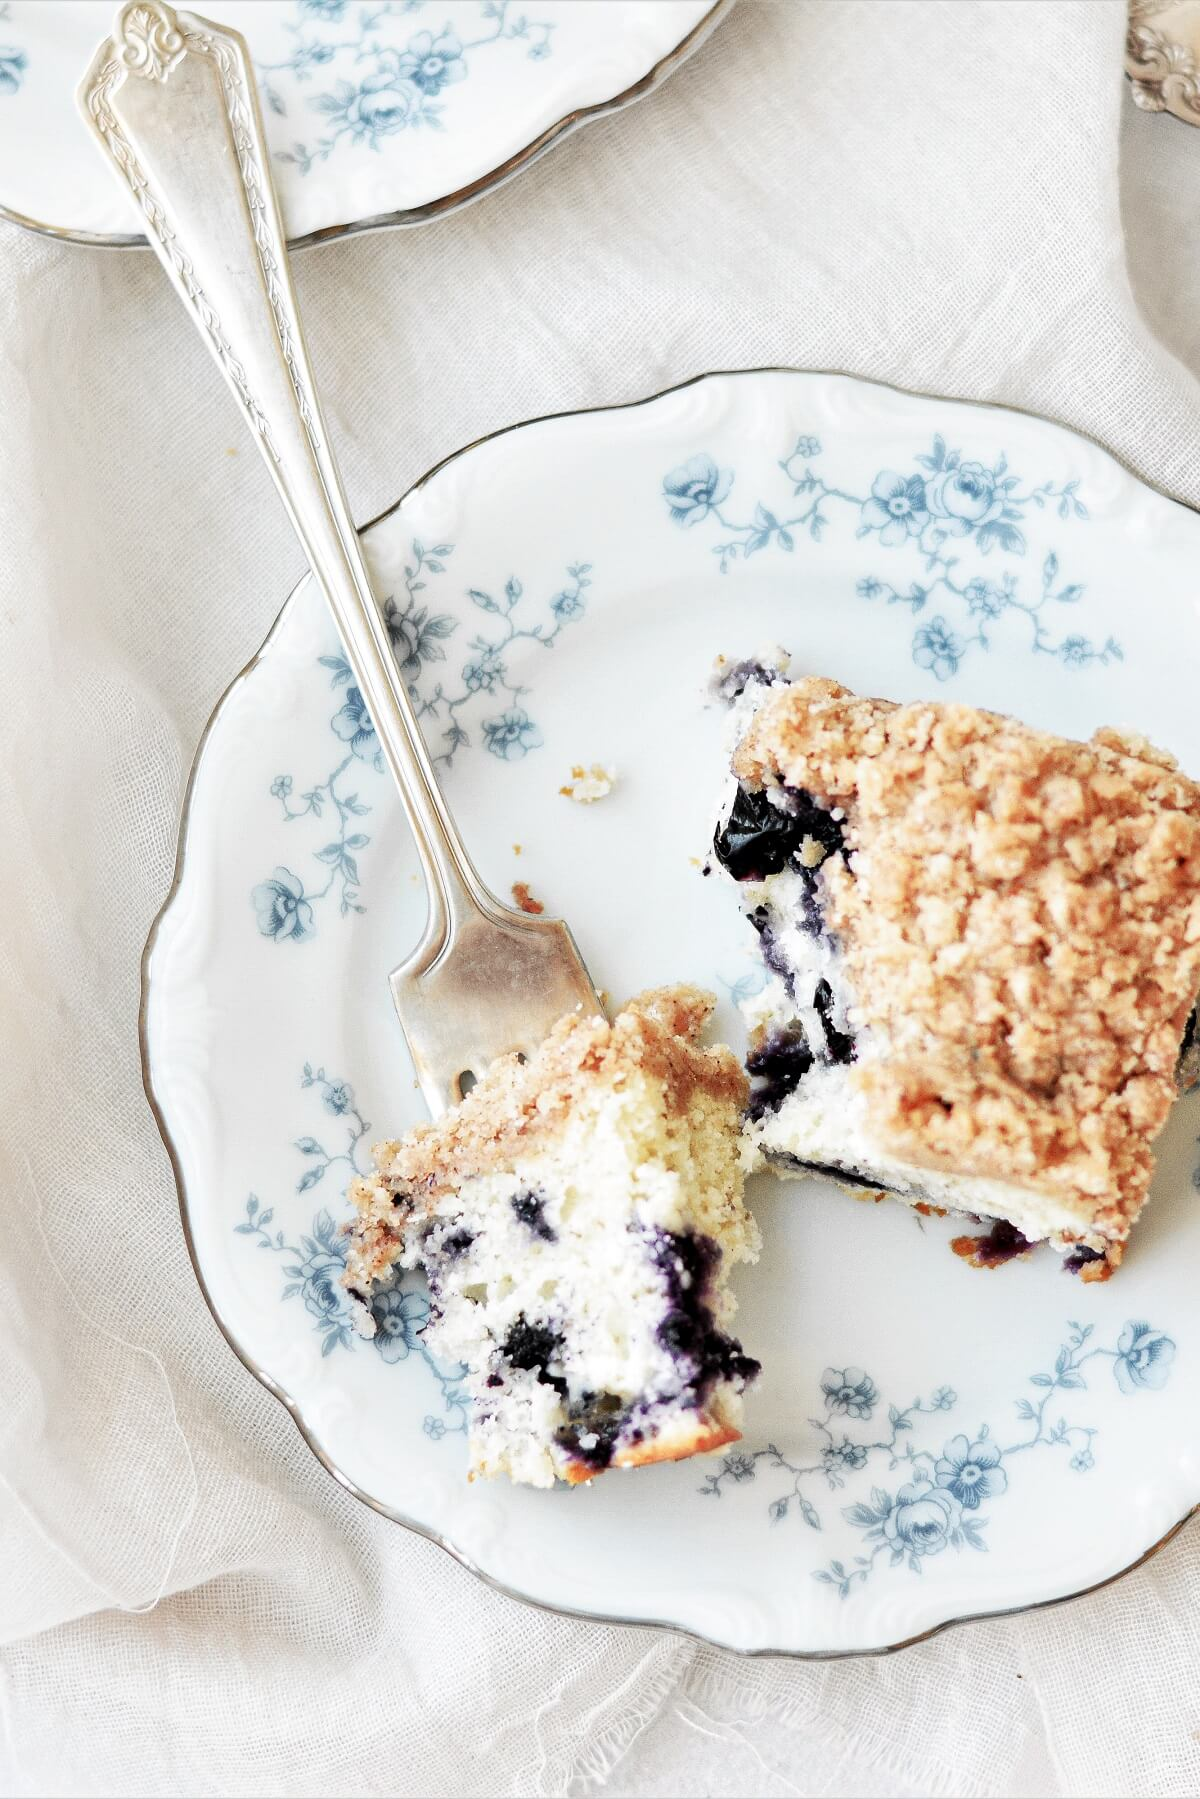 A piece of blueberry buckle coffee cake with a bite taken.